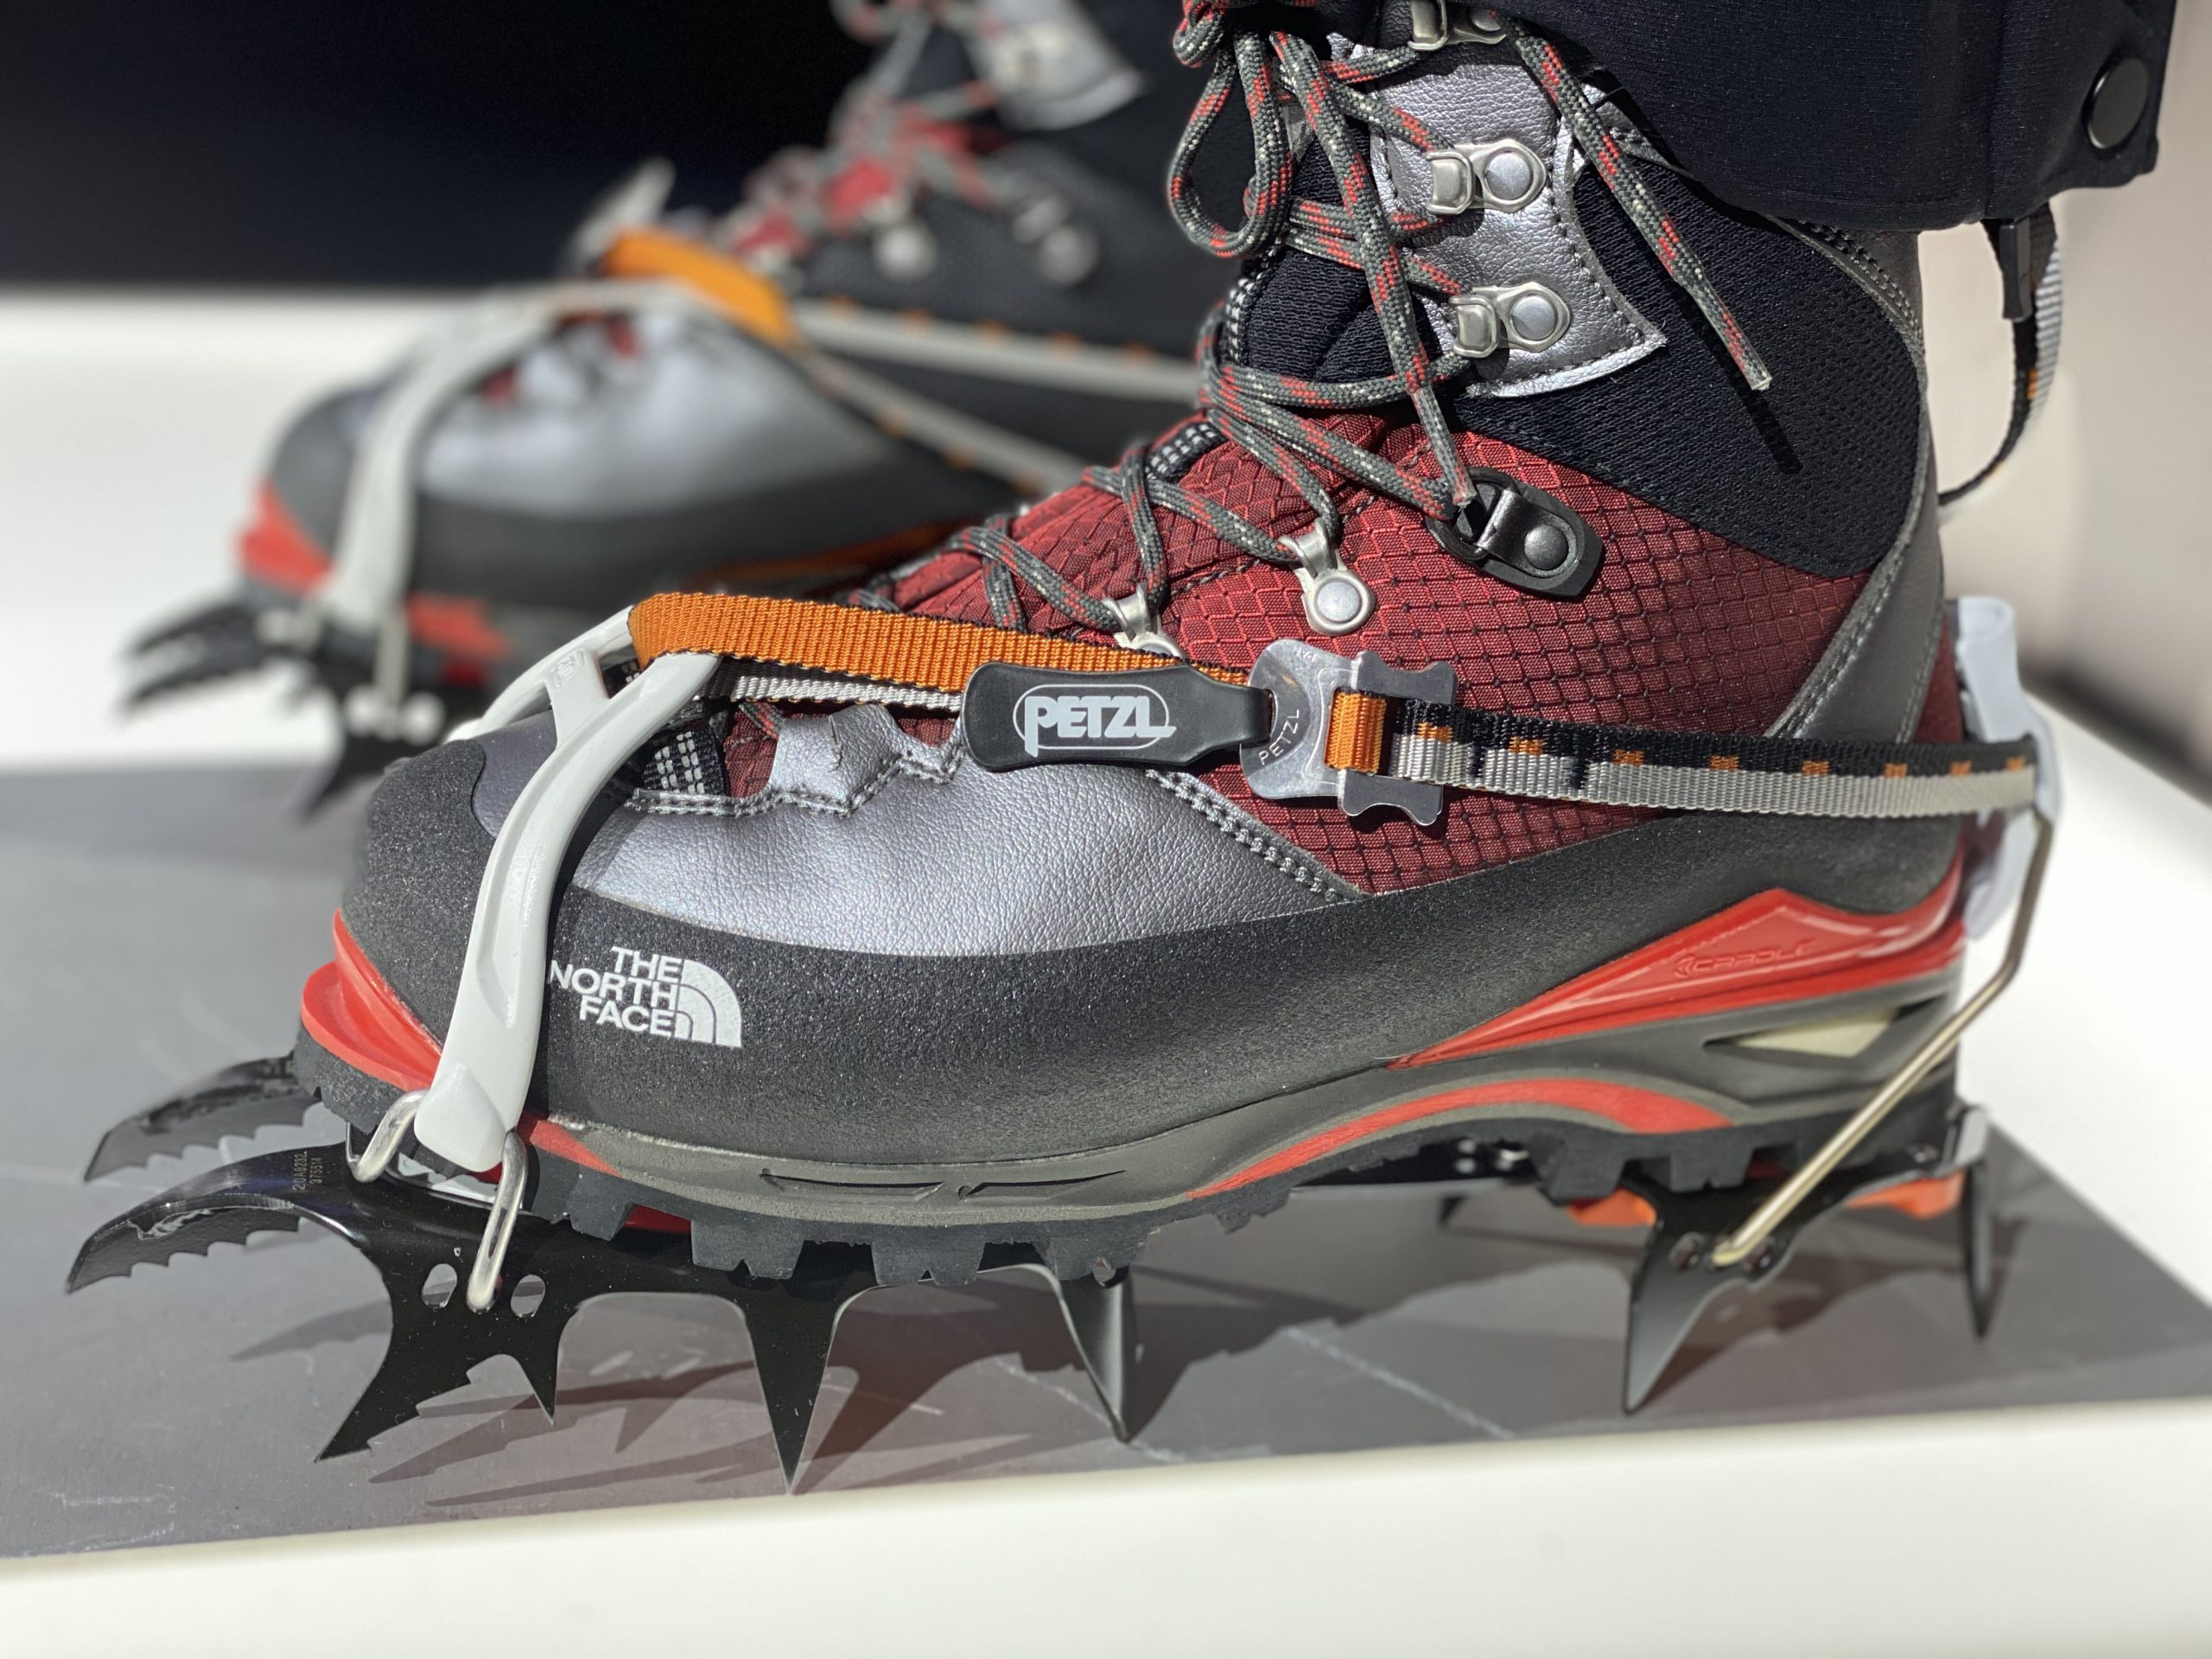 Outdoor and technical performance gear at ISPO in Munich